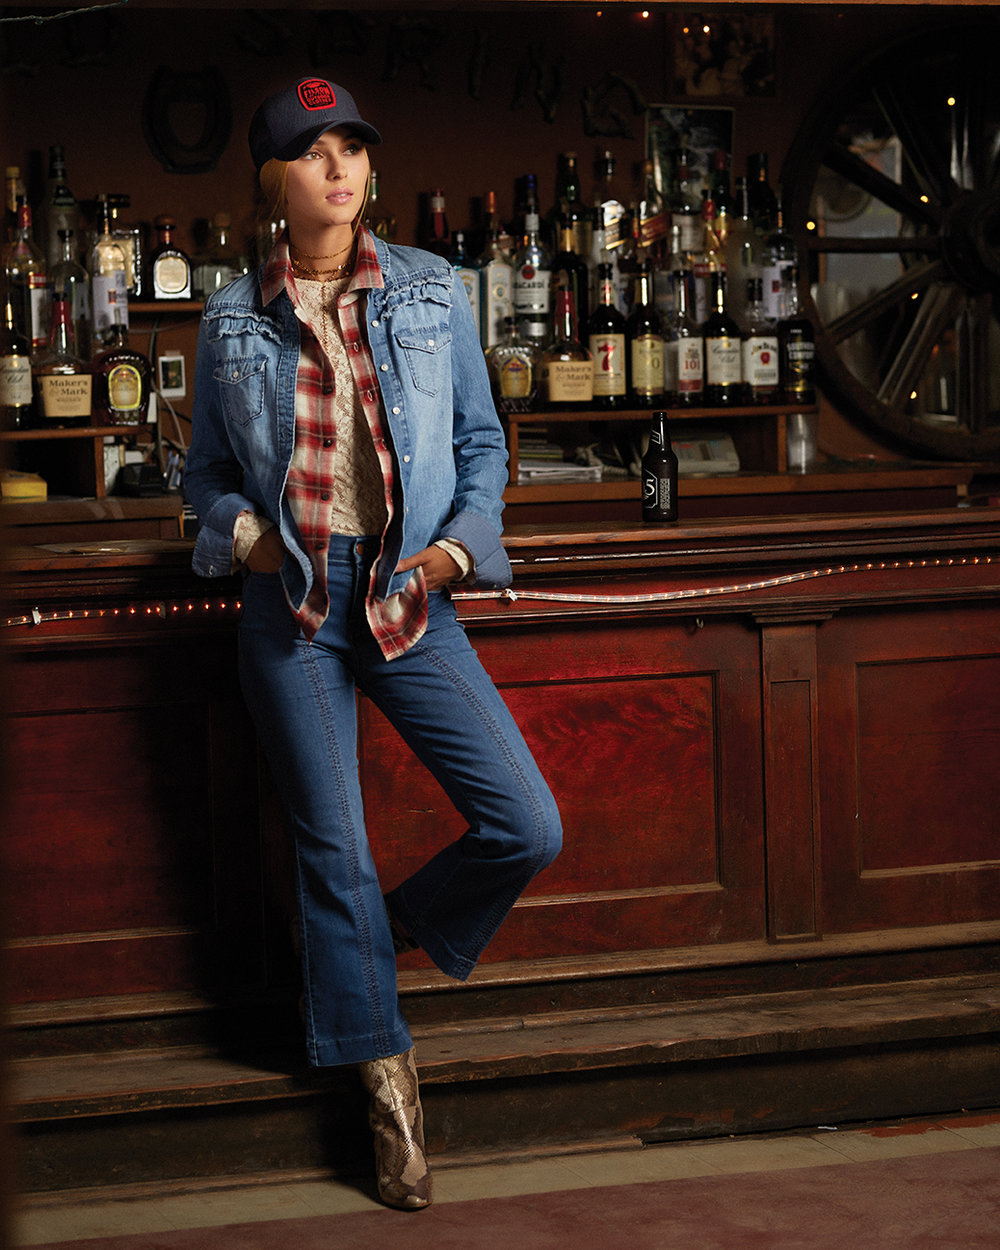 Denim shirt and boots, AMBIANCE. Lace top, WILDFLOWER WOMEN. Plaid shirt and hat, ACE RIVINGTON. Jeans and earrings, LOVEBIRD.Necklaces, ROWAN.